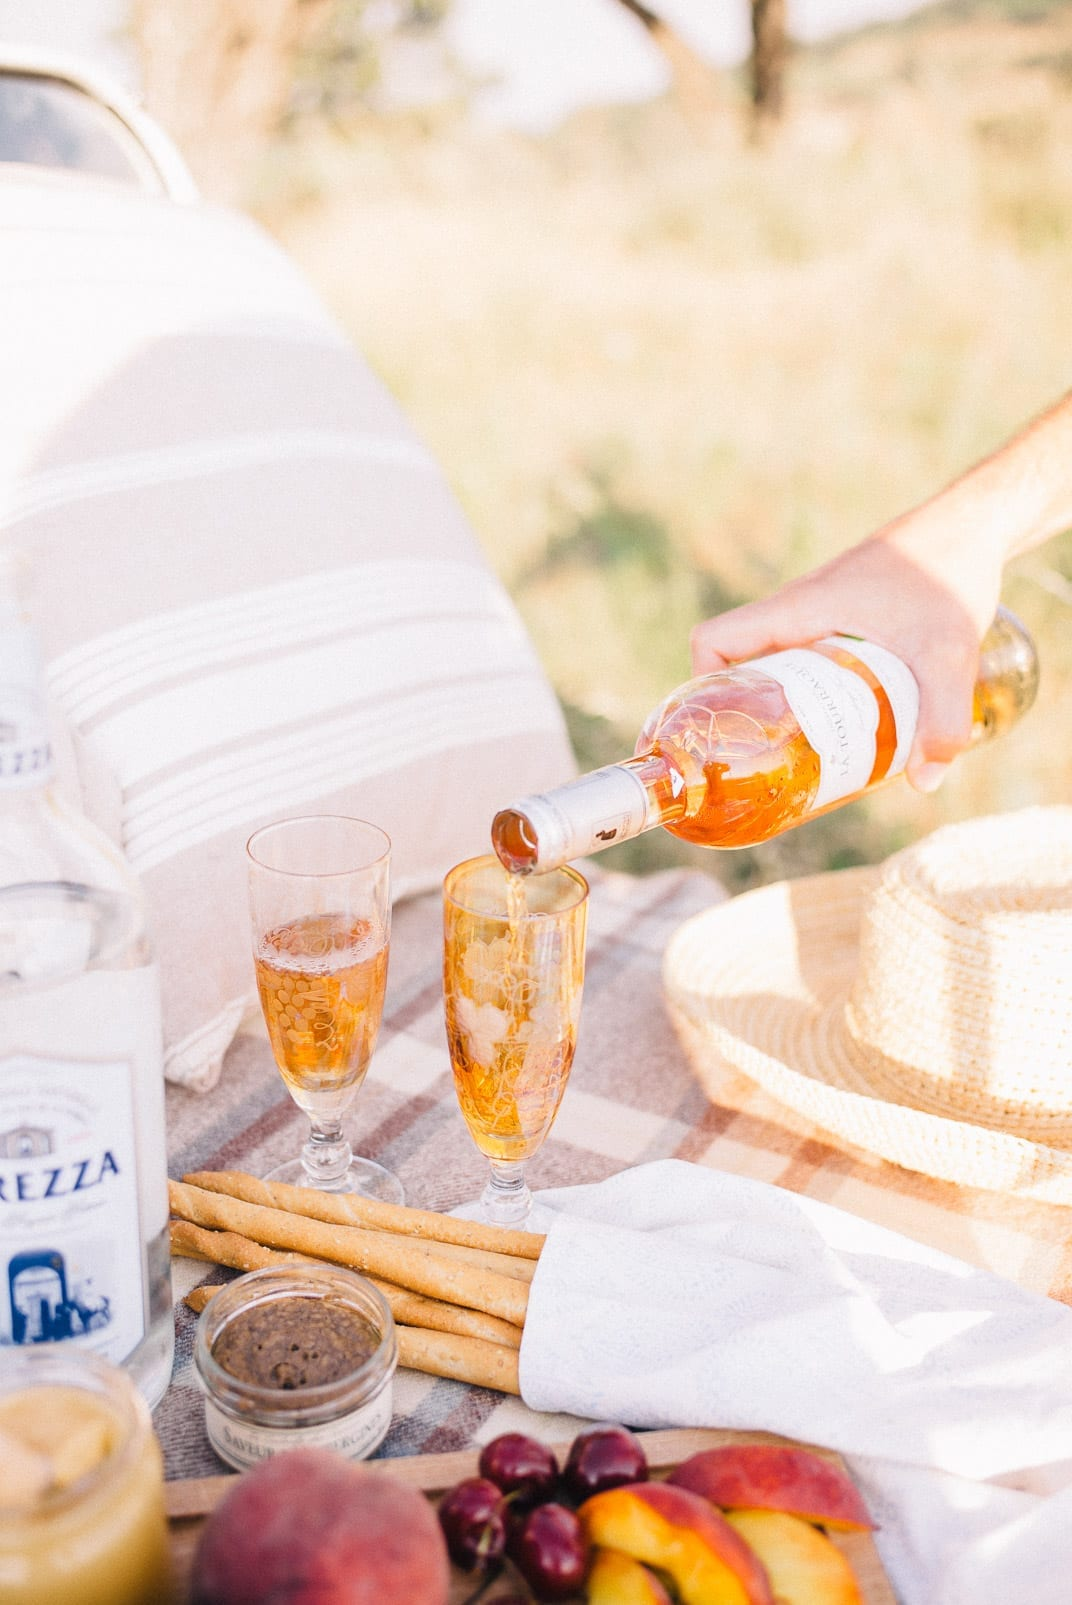 The Most Romantic Things - Moke Picnic for Two!